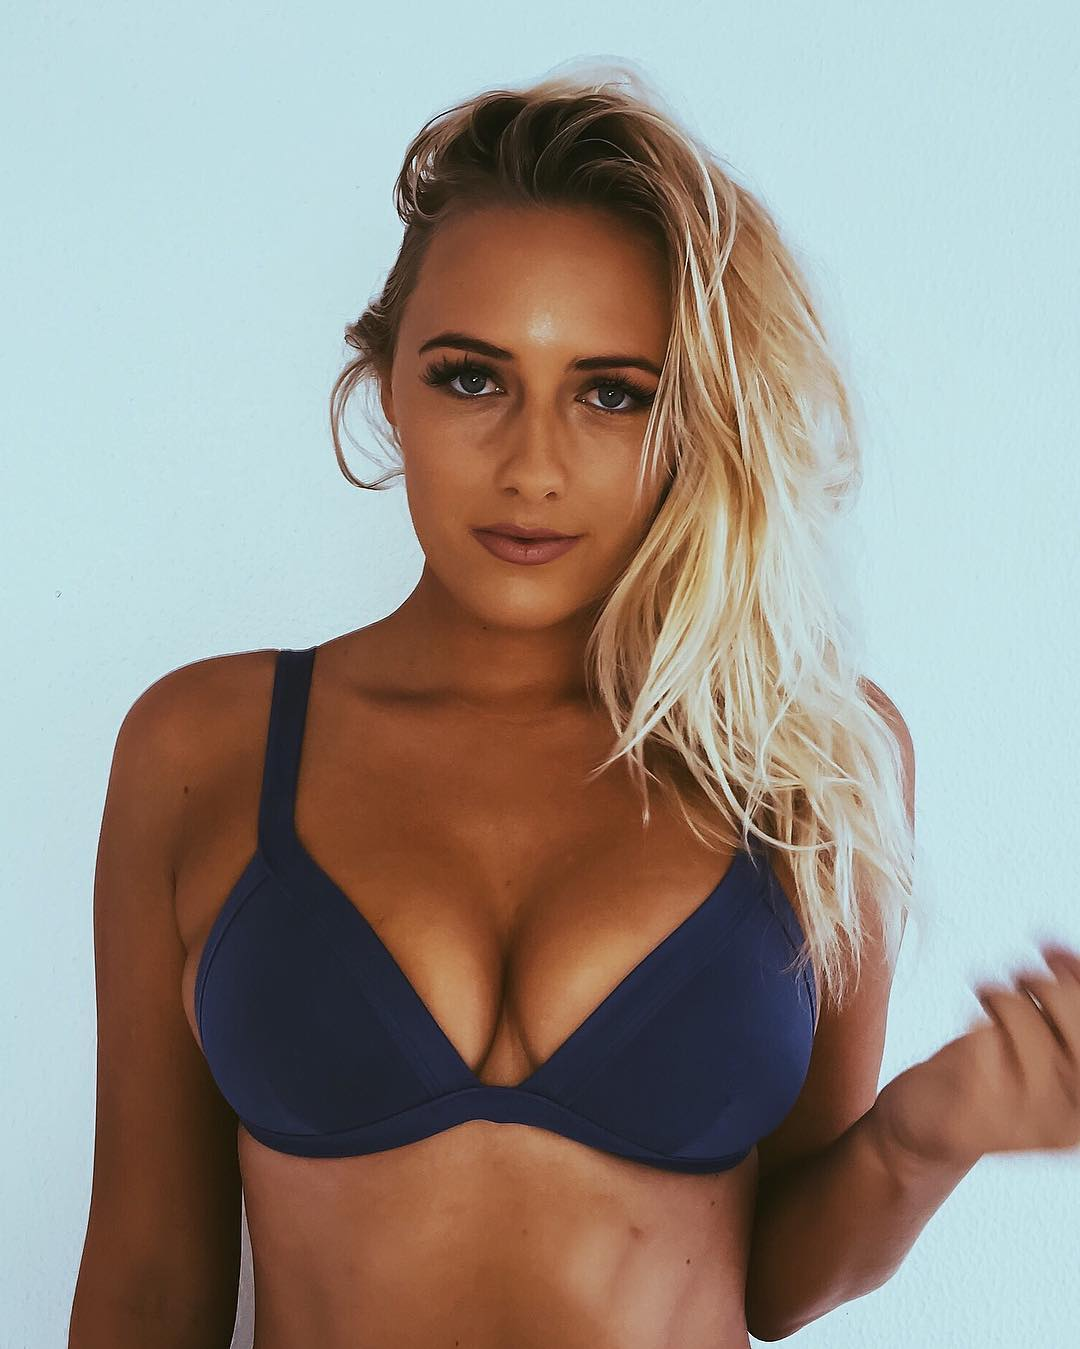 Gatas do Instagram #9: Ellie-Jean Coffey